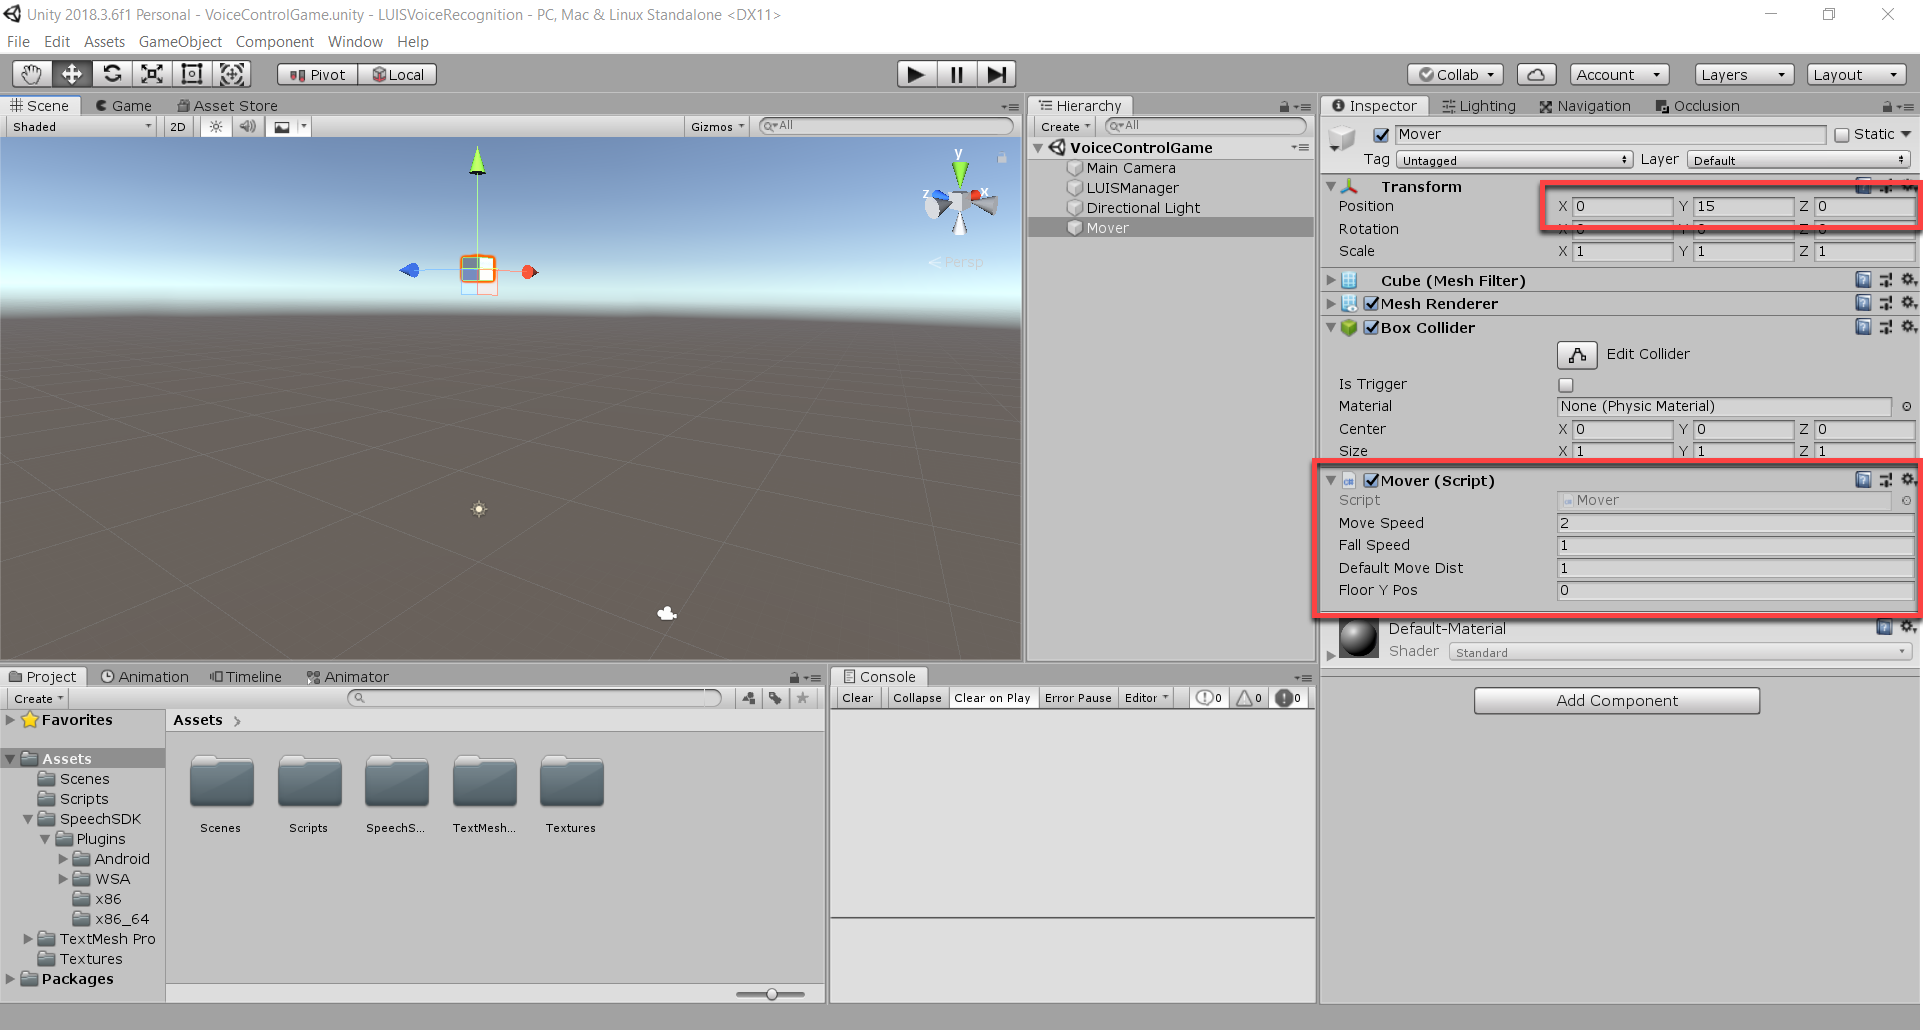 Script added to Rover object in Unity